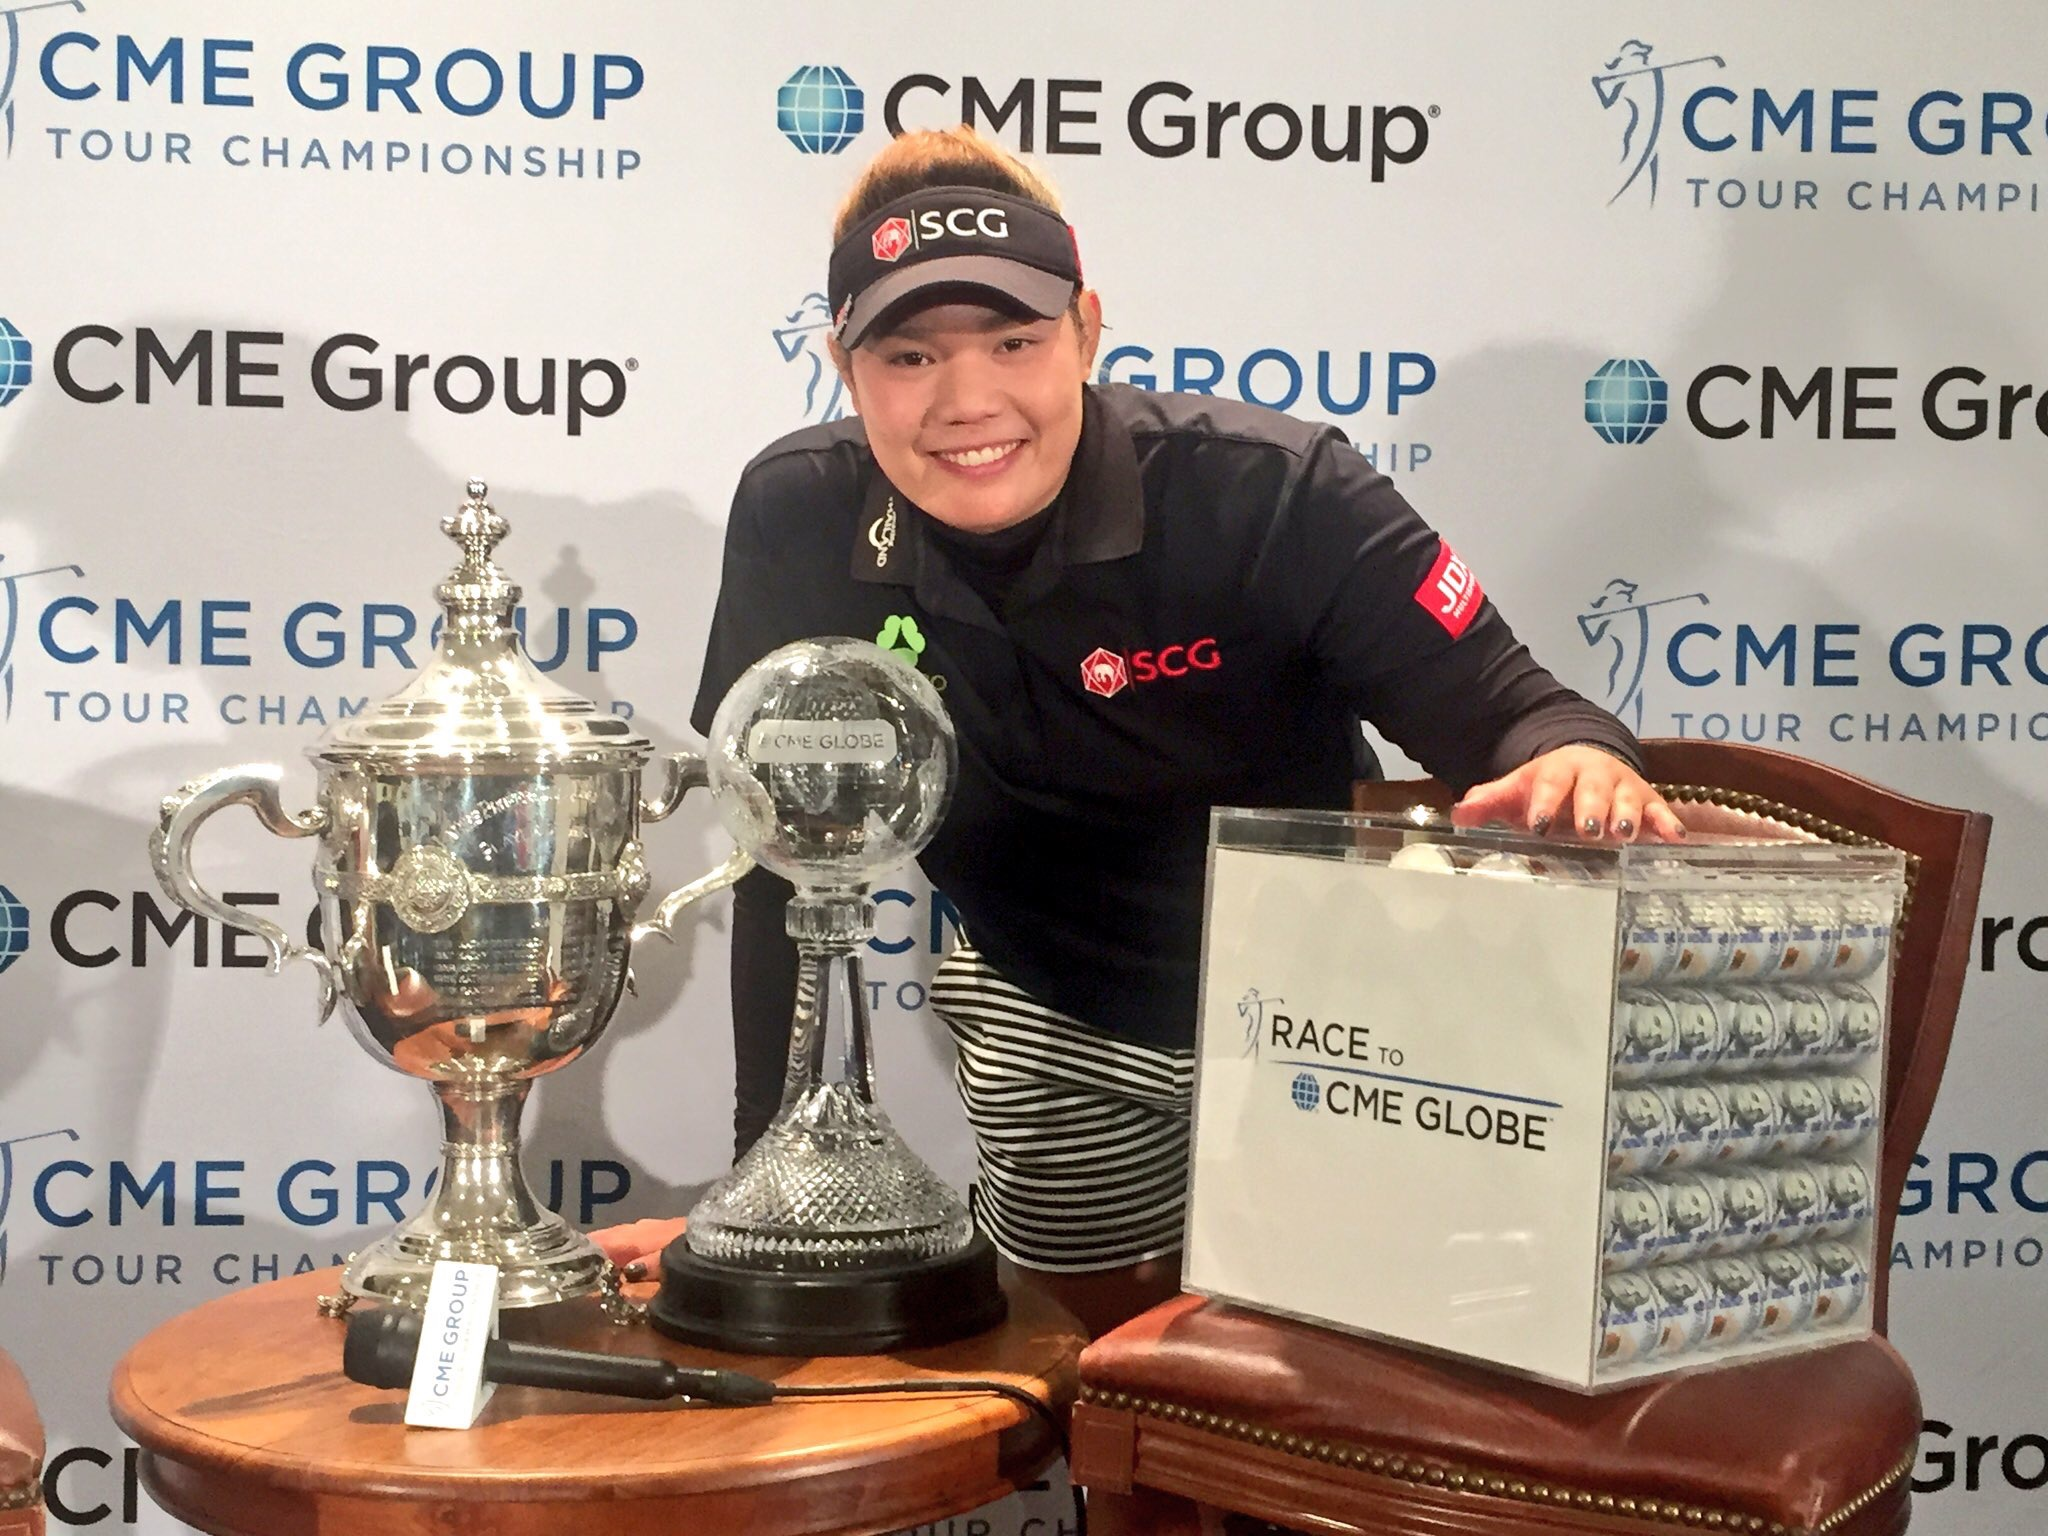 Ariya Jutanugarn puts the icing on a career-changing year at the CME Group Tour Championship.